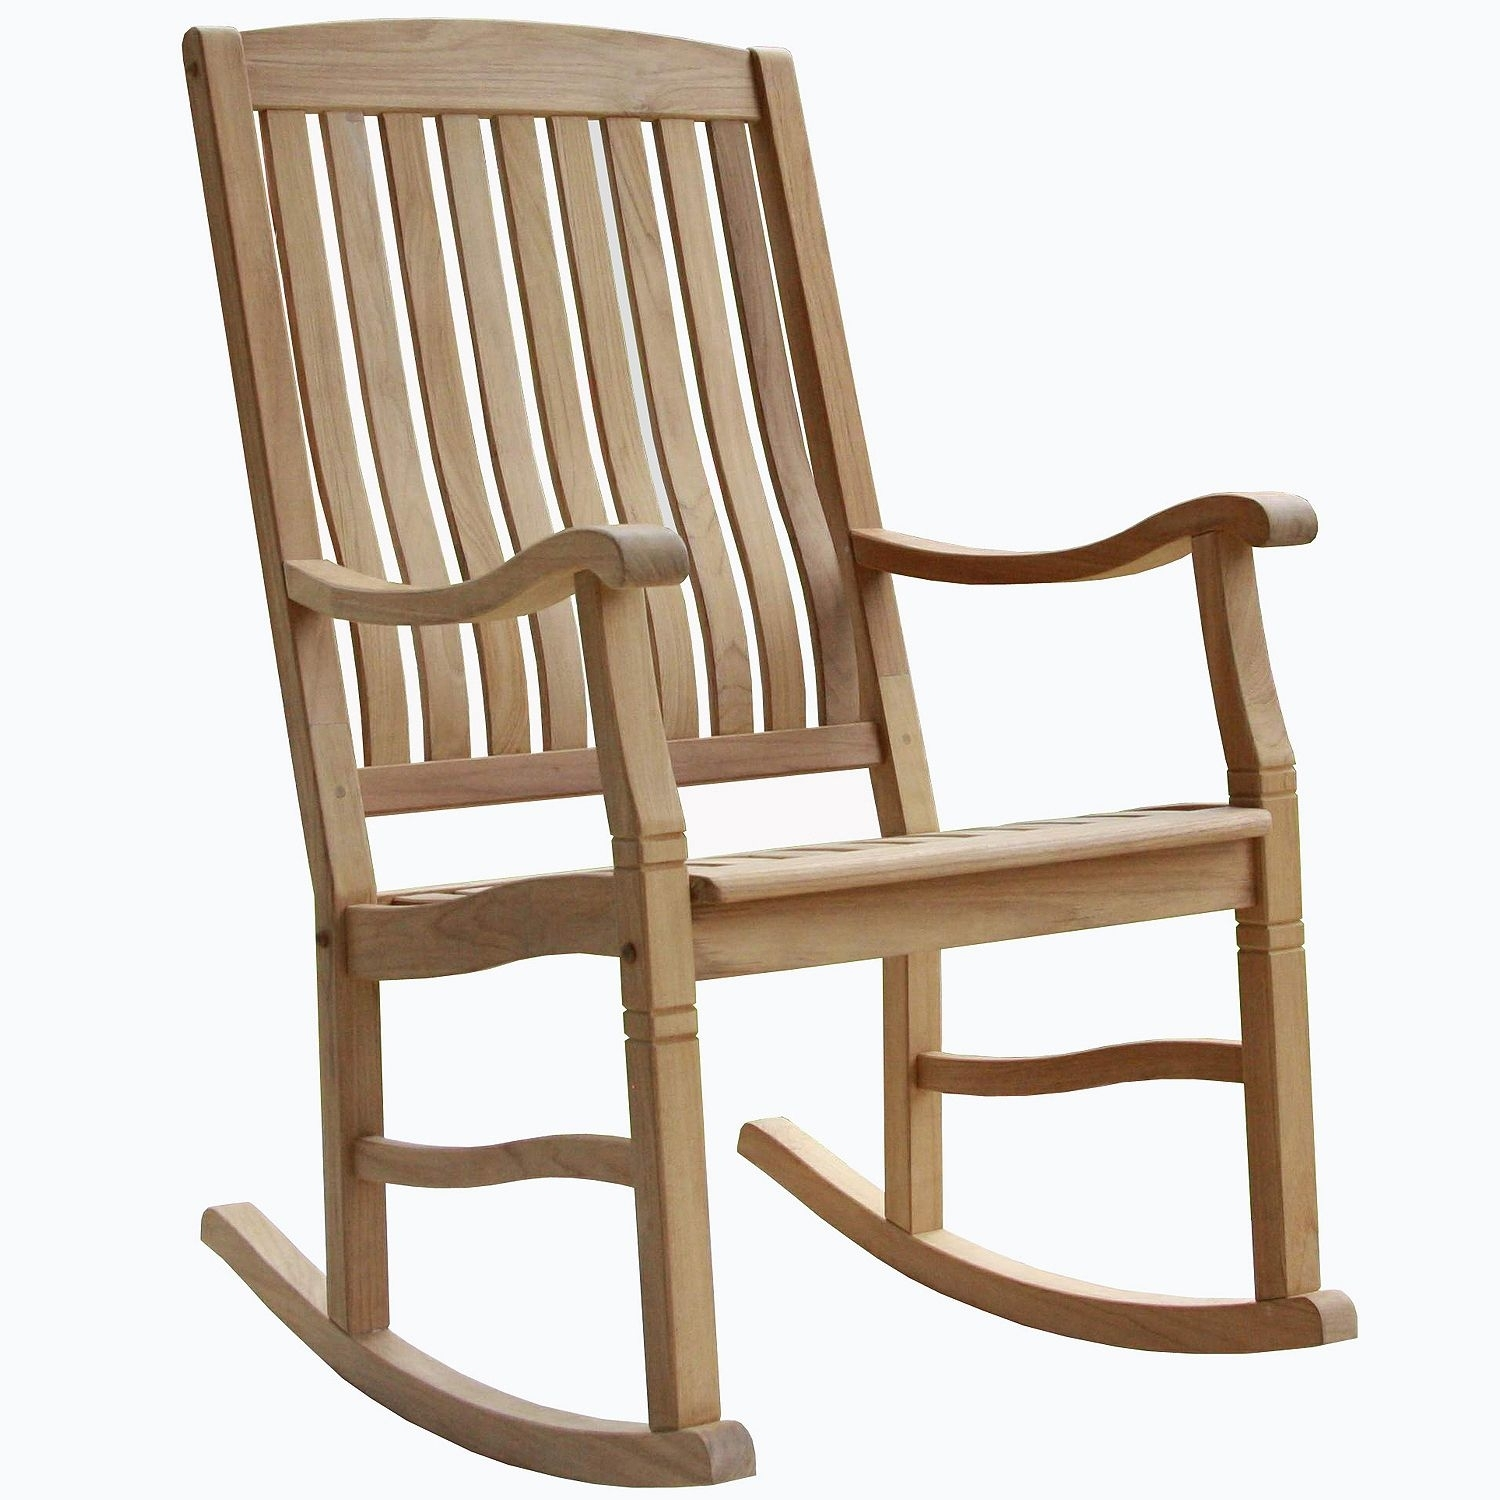 Teak Rocking Chair (2 Pack) 78742041506 | Ebay Intended For Teak Patio Rocking Chairs (View 14 of 15)